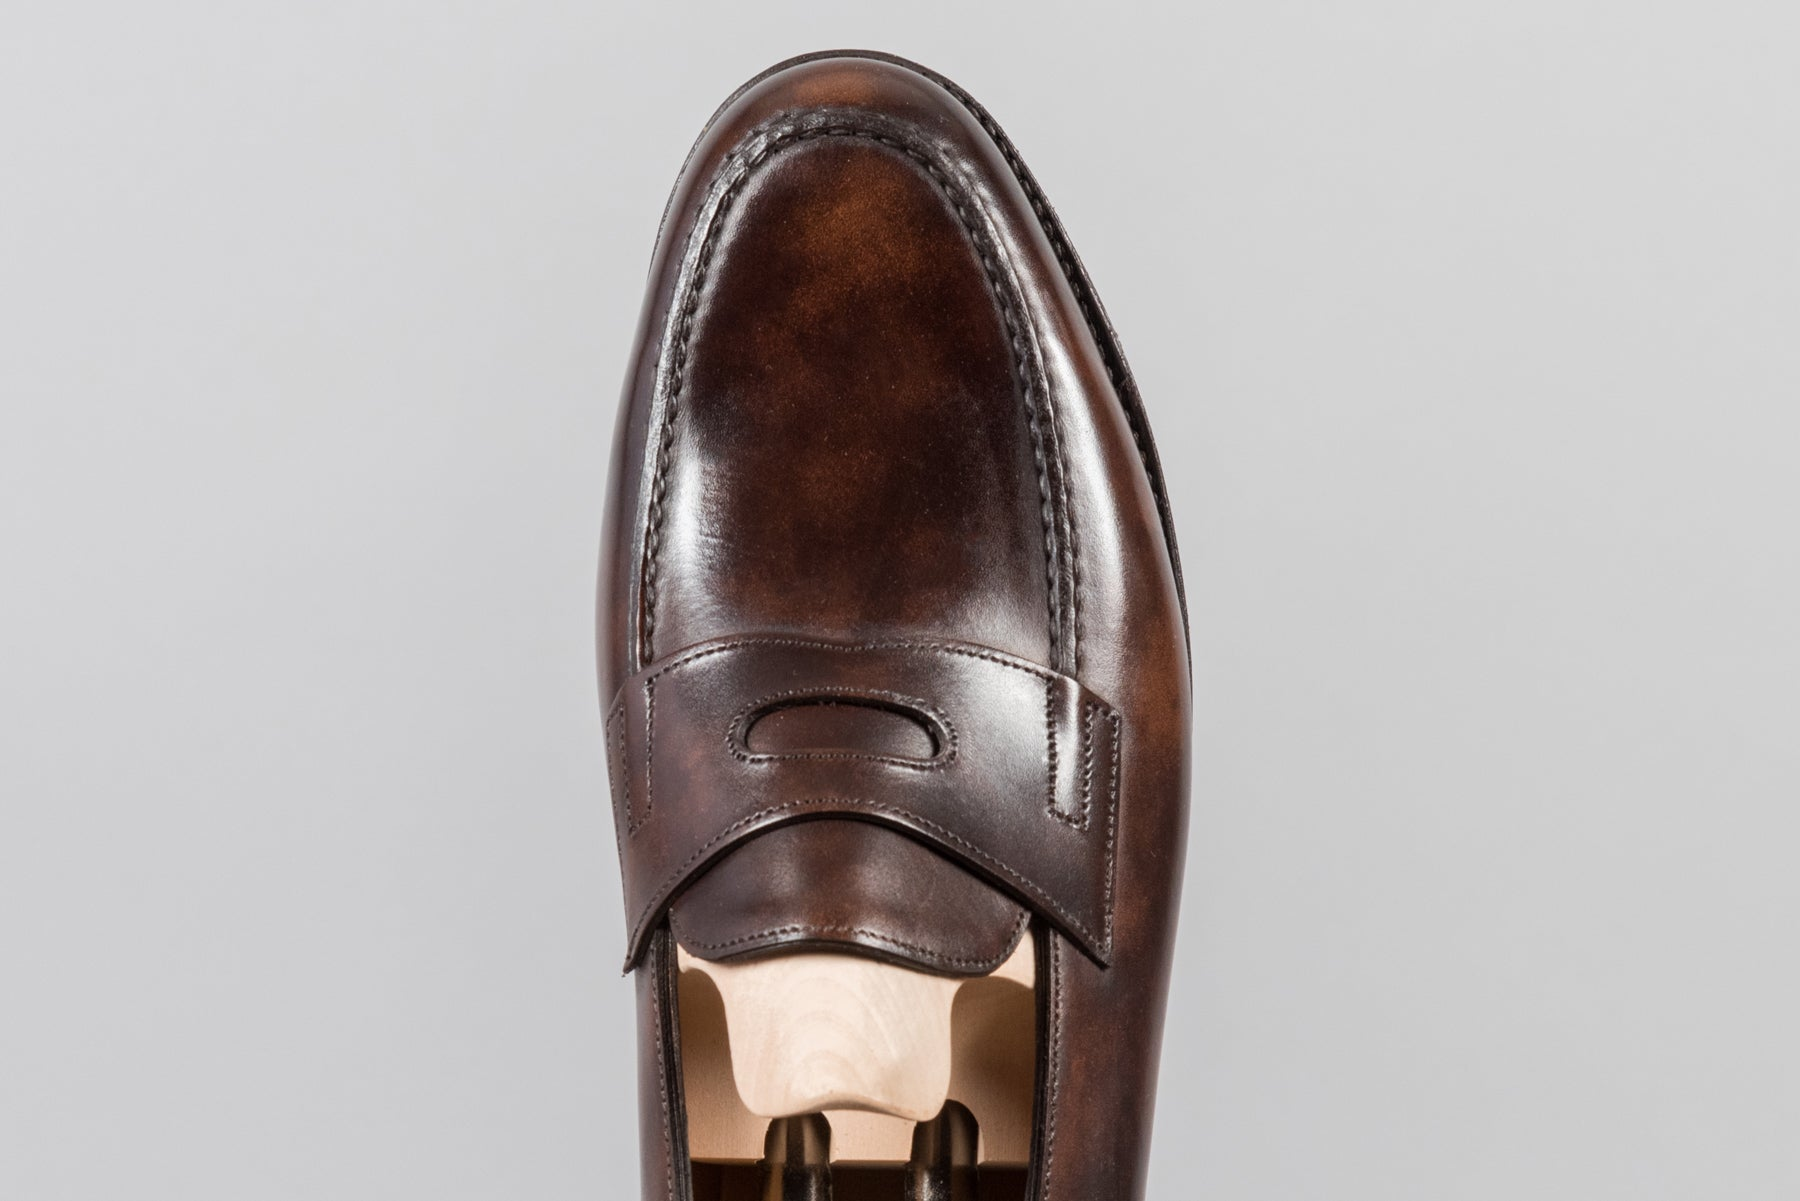 John Lobb Lopez Dark Brown Museum Calf - Stock Service